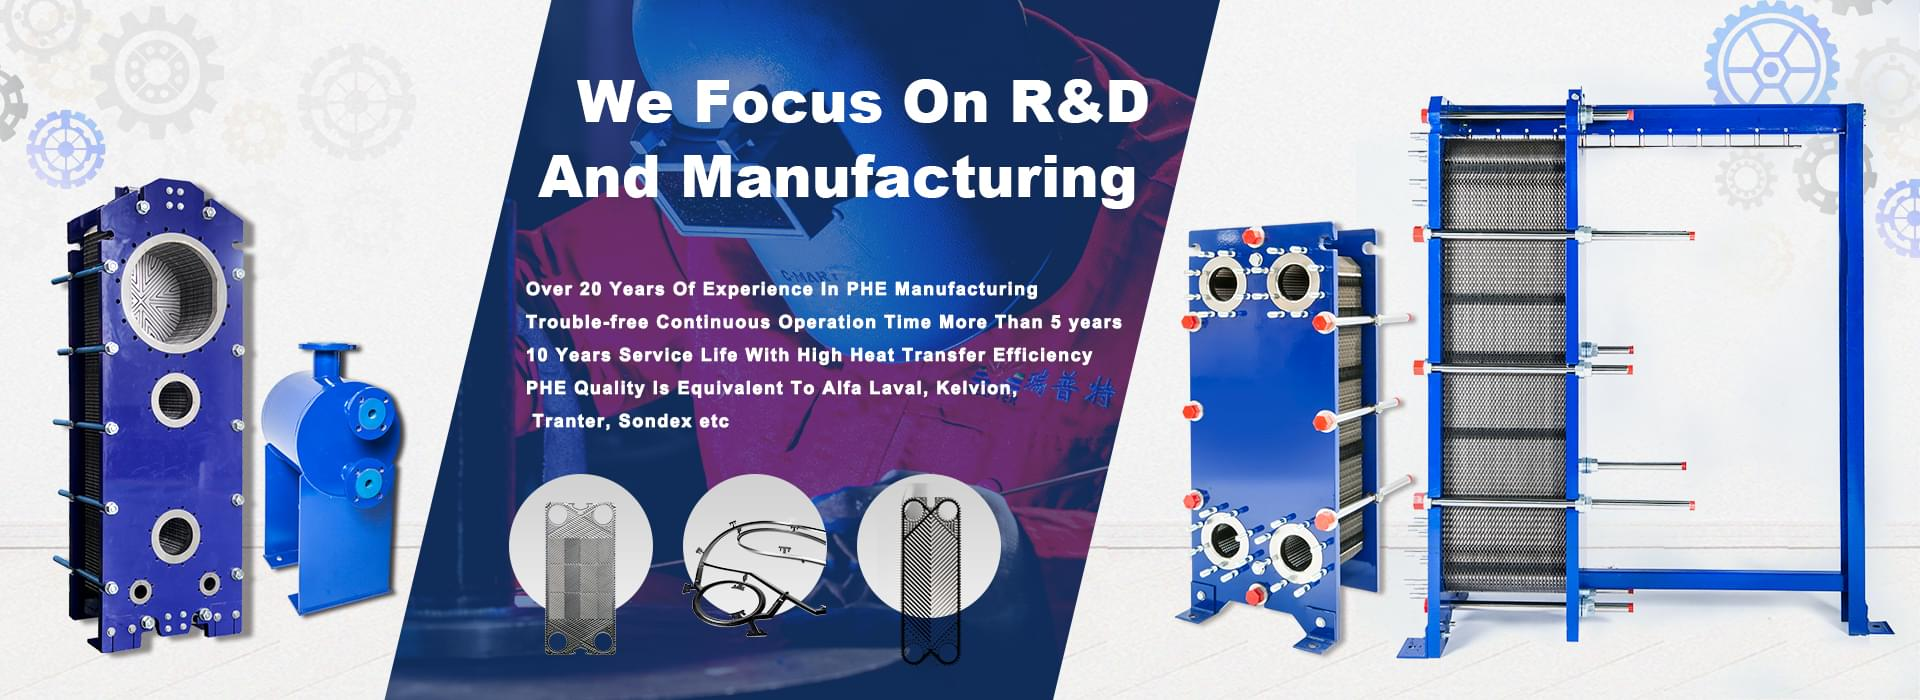 We focus on R&D and manufacturing